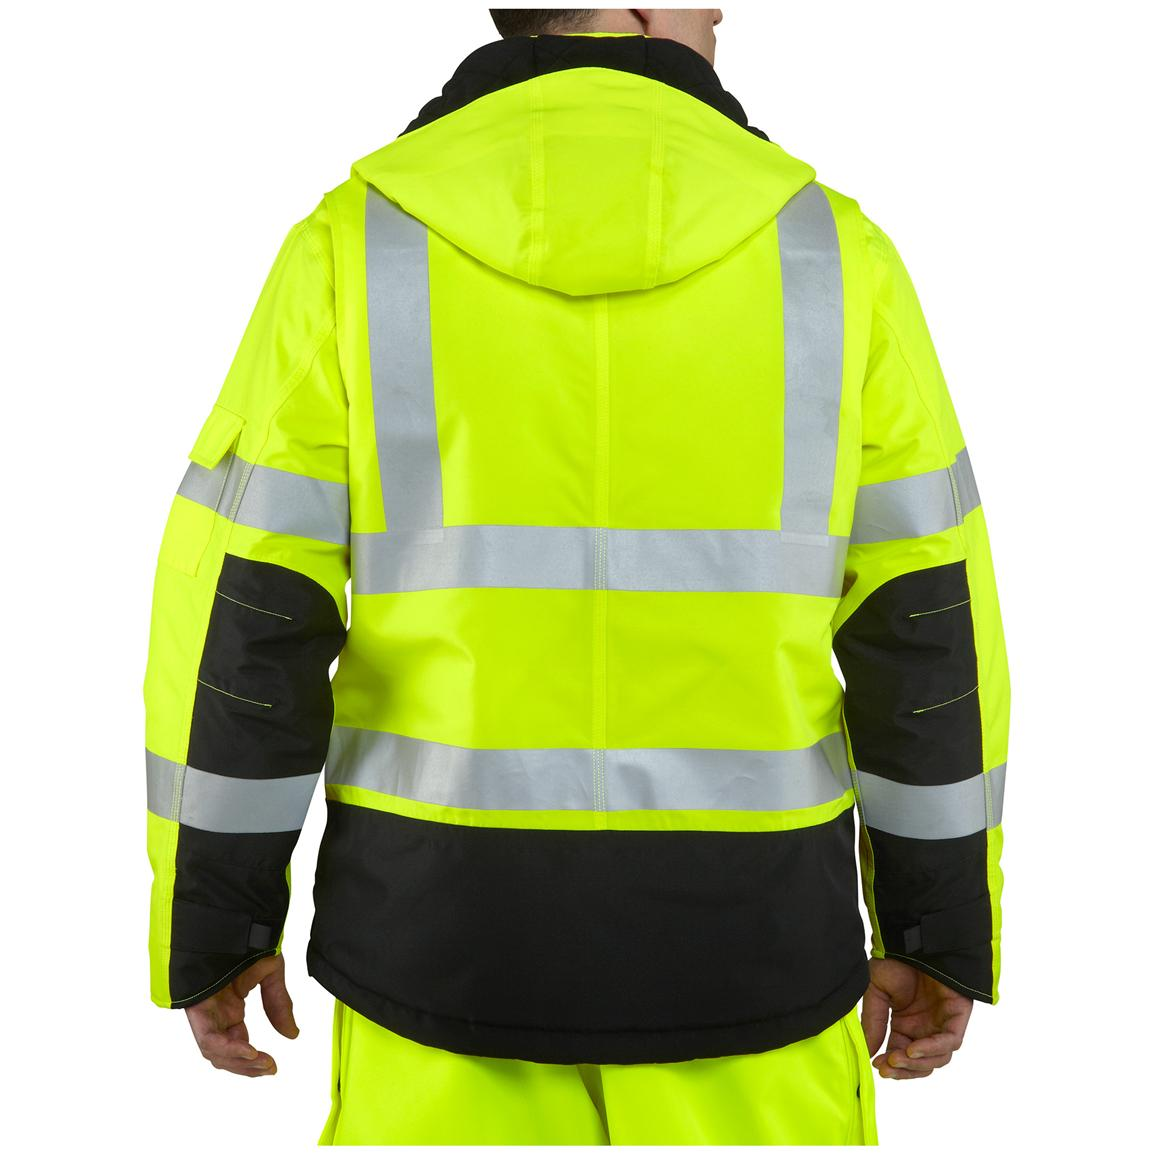 Carhartt®High-visibility Class 3 Sherwood Jacket, Brite Lime, Back